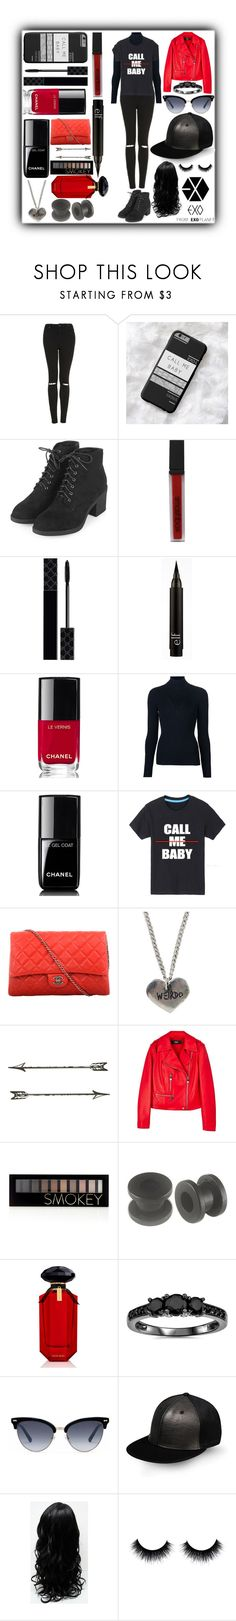 """""""CALL ME BABY : KAI INSPIRED"""" by puffer112 ❤ liked on Polyvore featuring Topshop, Smashbox, Gucci, Chanel, Maison Ullens, Versus, Forever 21, Victoria's Secret, Bliss Diamond and SILENT by Damir Doma"""